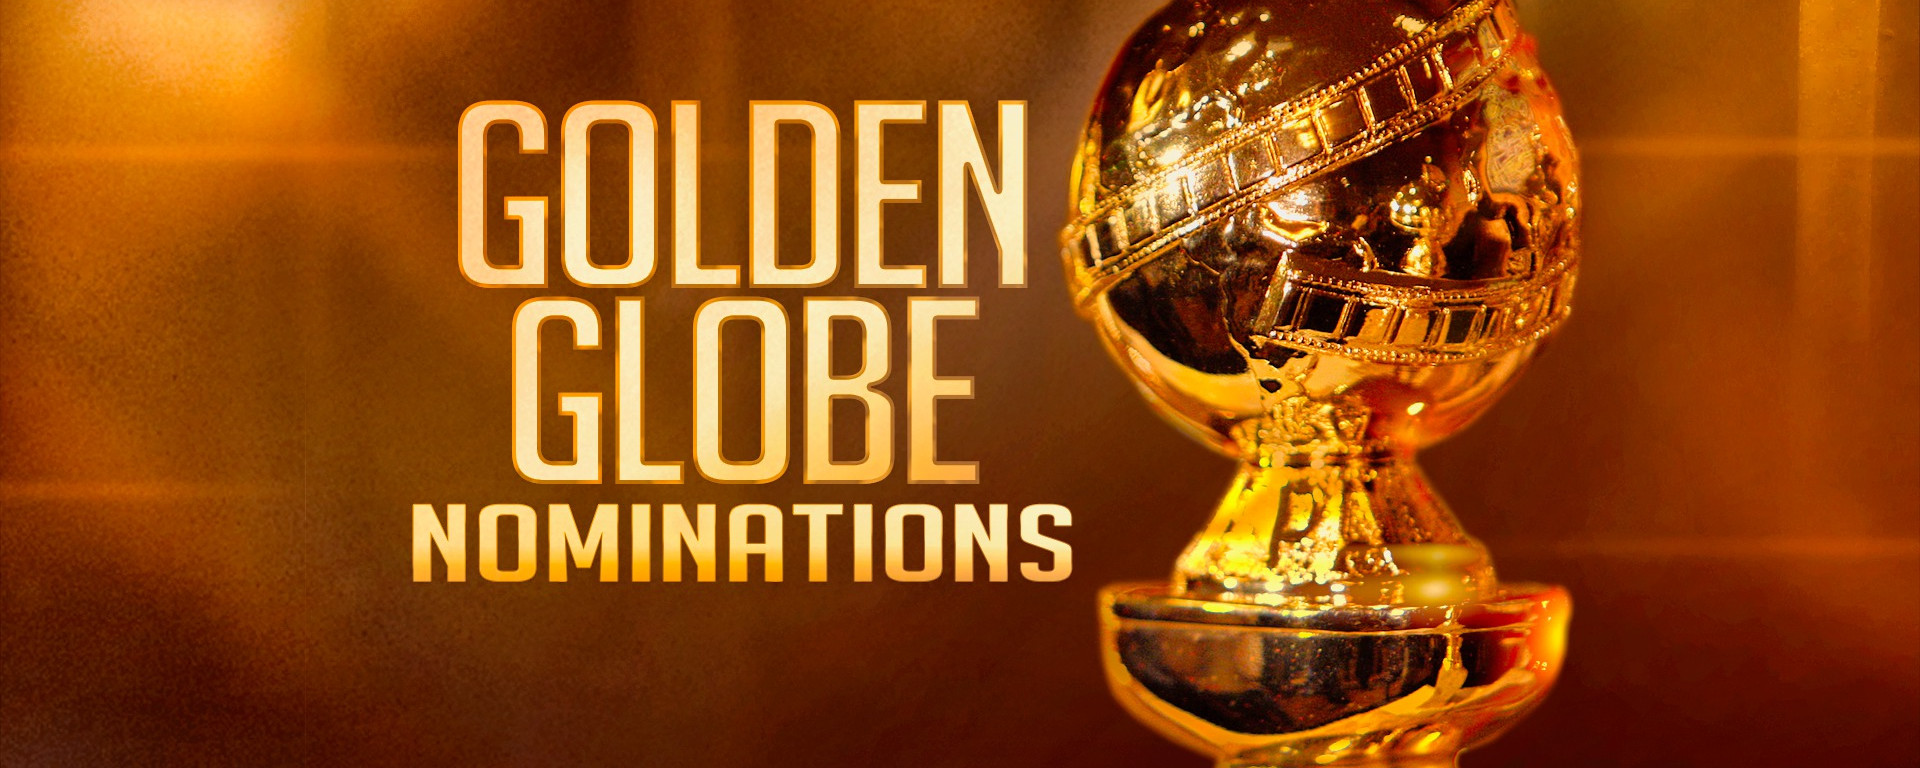 Nominados a los Golden Globes